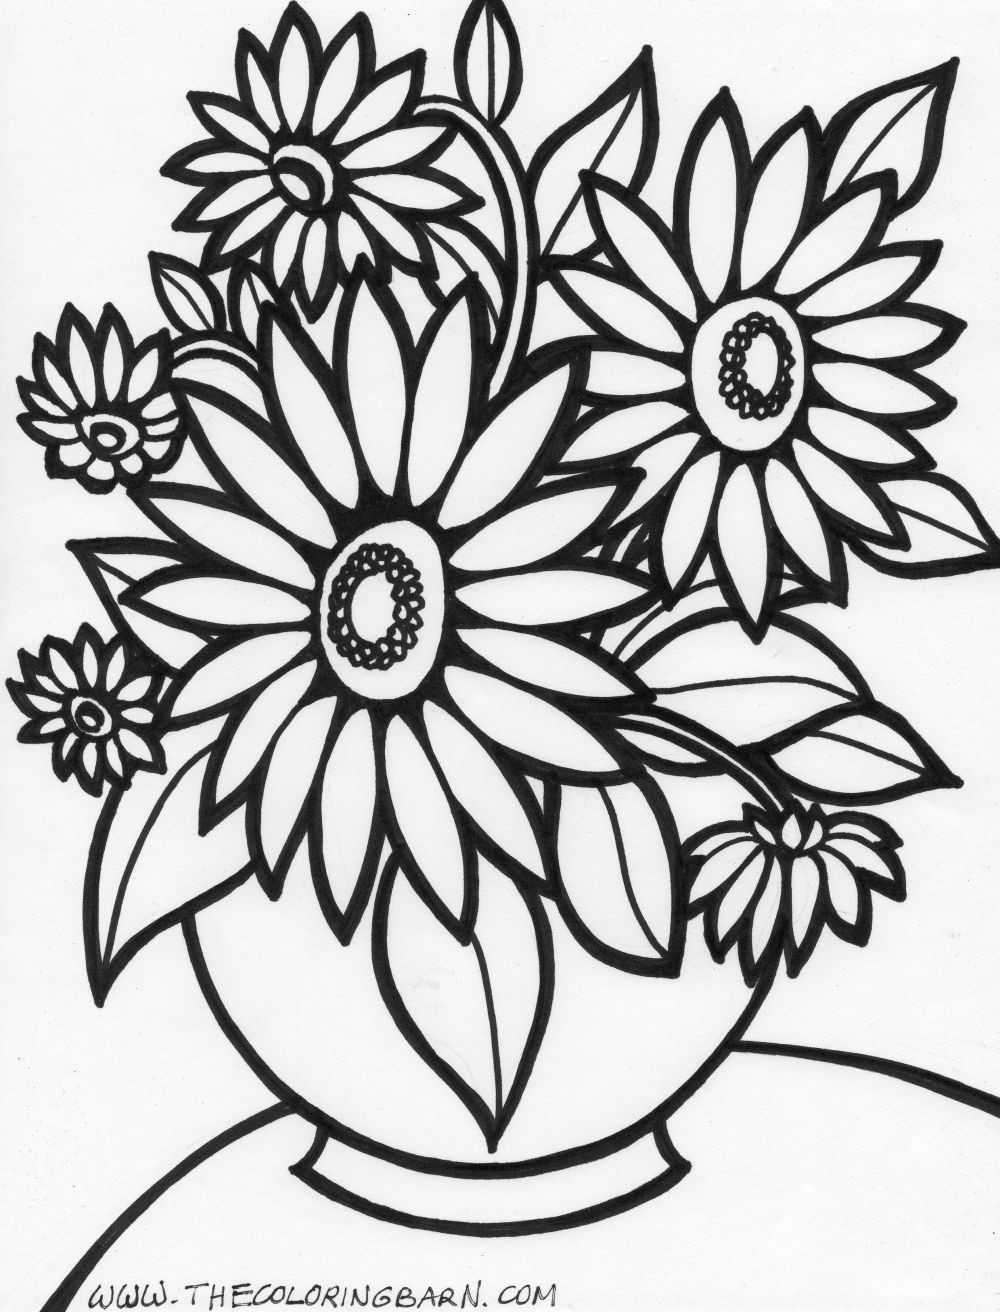 Coloring Pages Christmas For Adults | Free download best Coloring ...